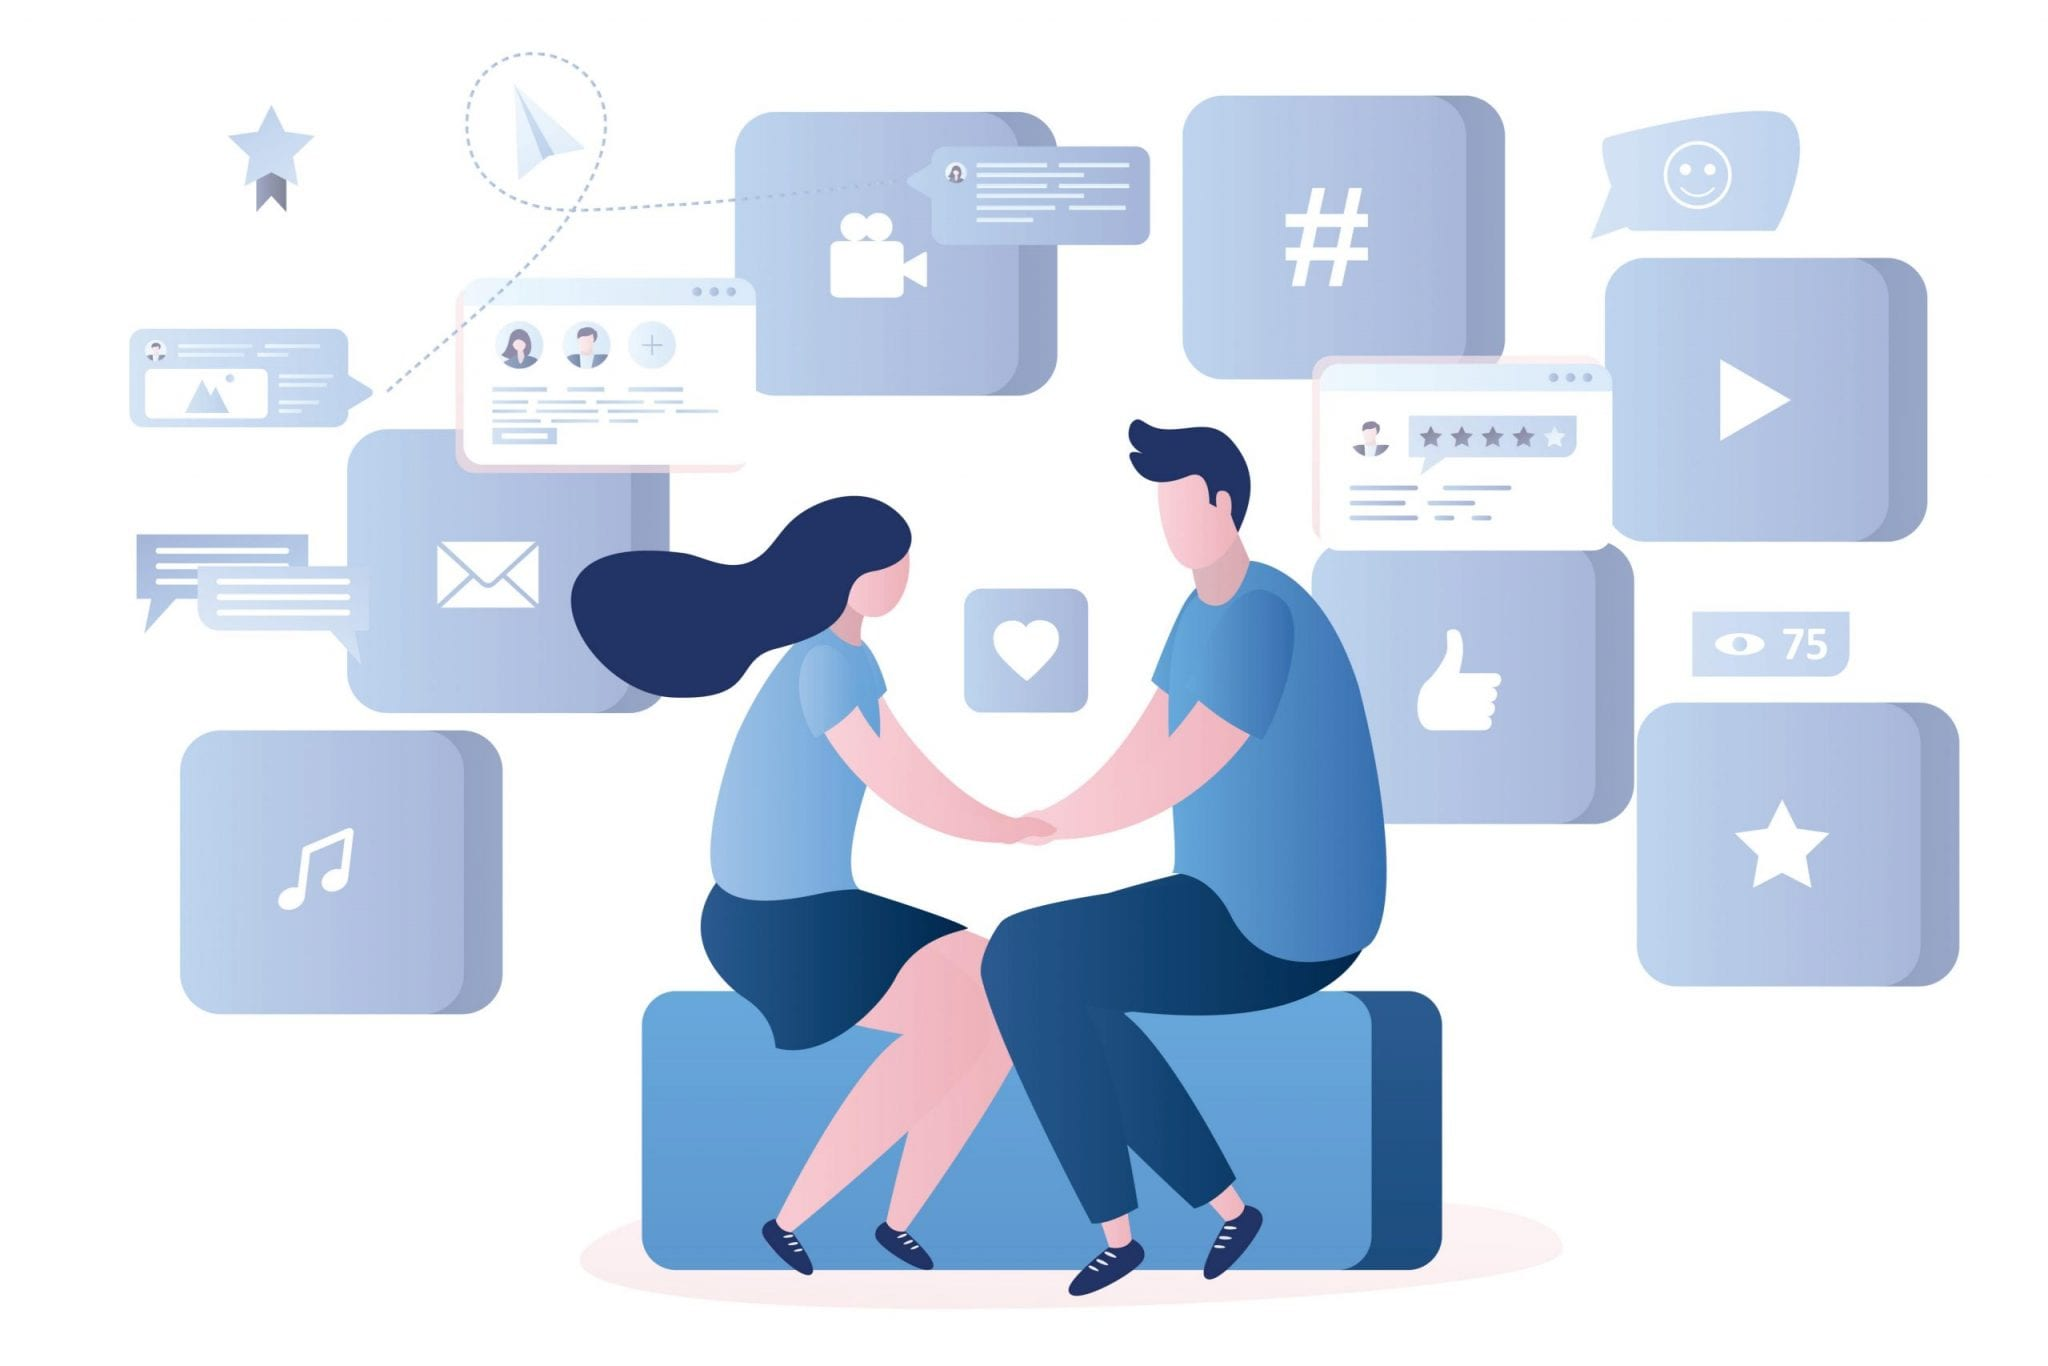 Love Couple Sitting on the Big Button With a Heart Symbol, Various Web Signs, and Apps on Background, Chatting in Global Network, Male and Female Characters, Trendy Style Vector Illustration.